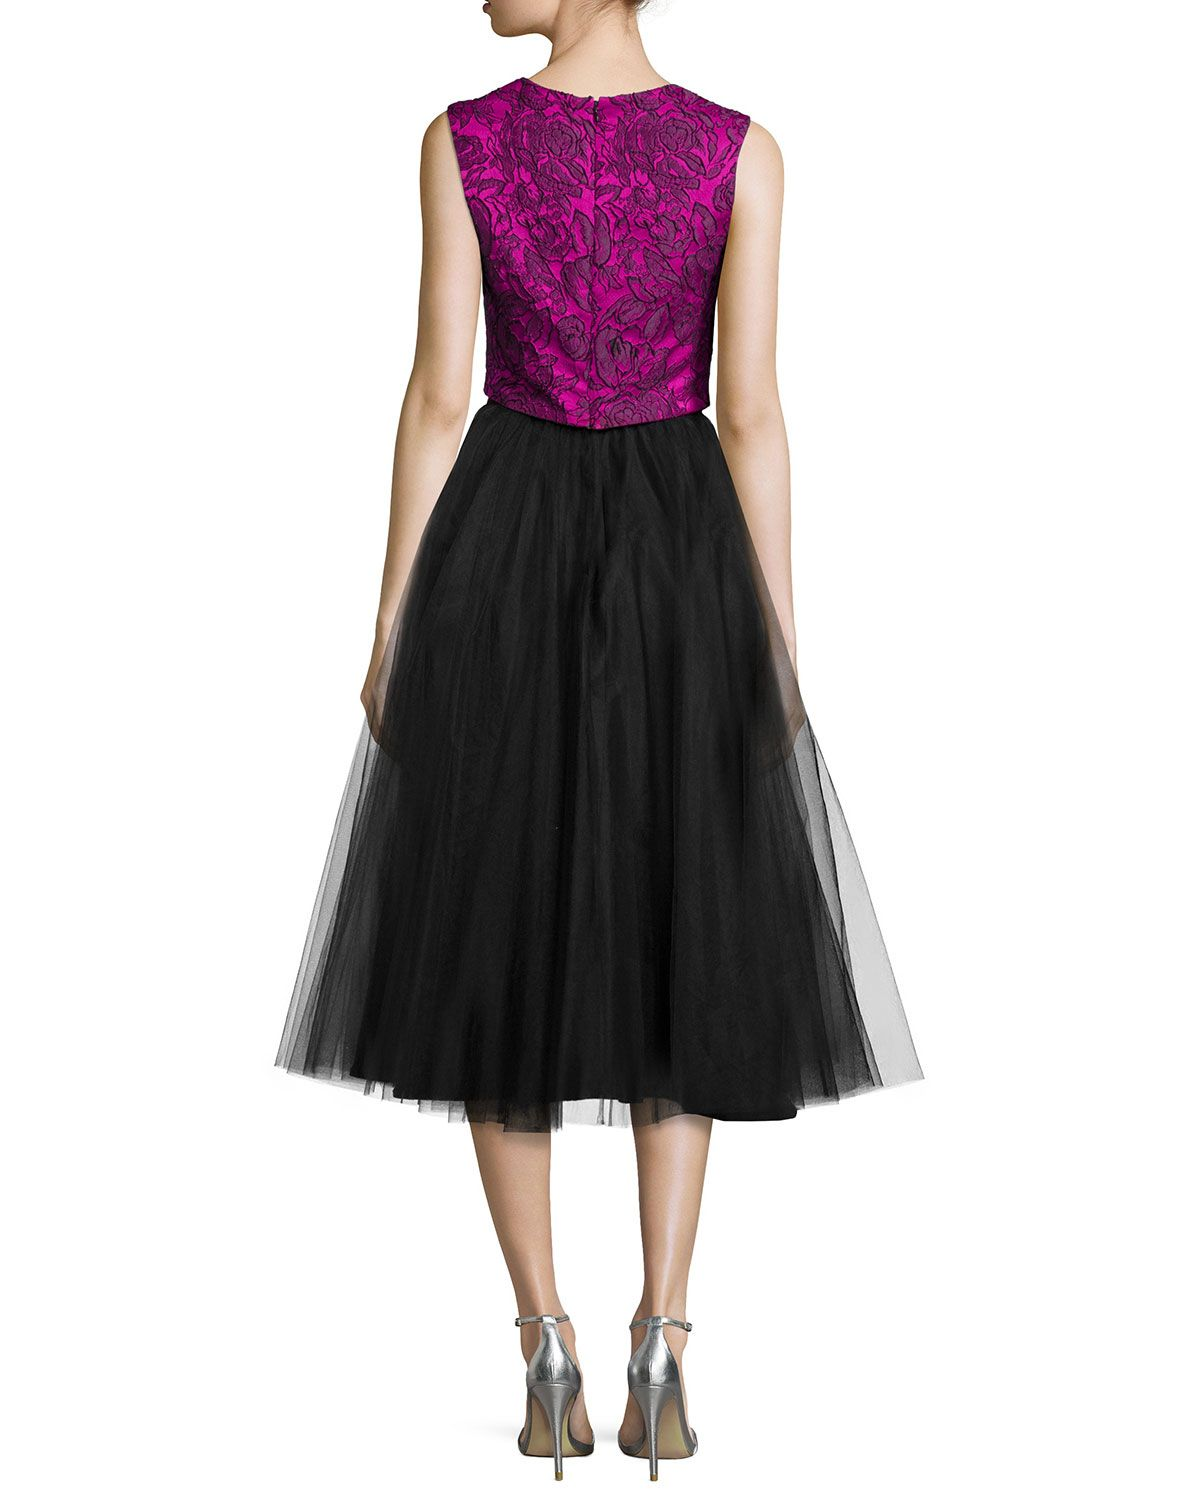 Sleeveless Lace Tea-Length Dress W/ Tulle Skirt